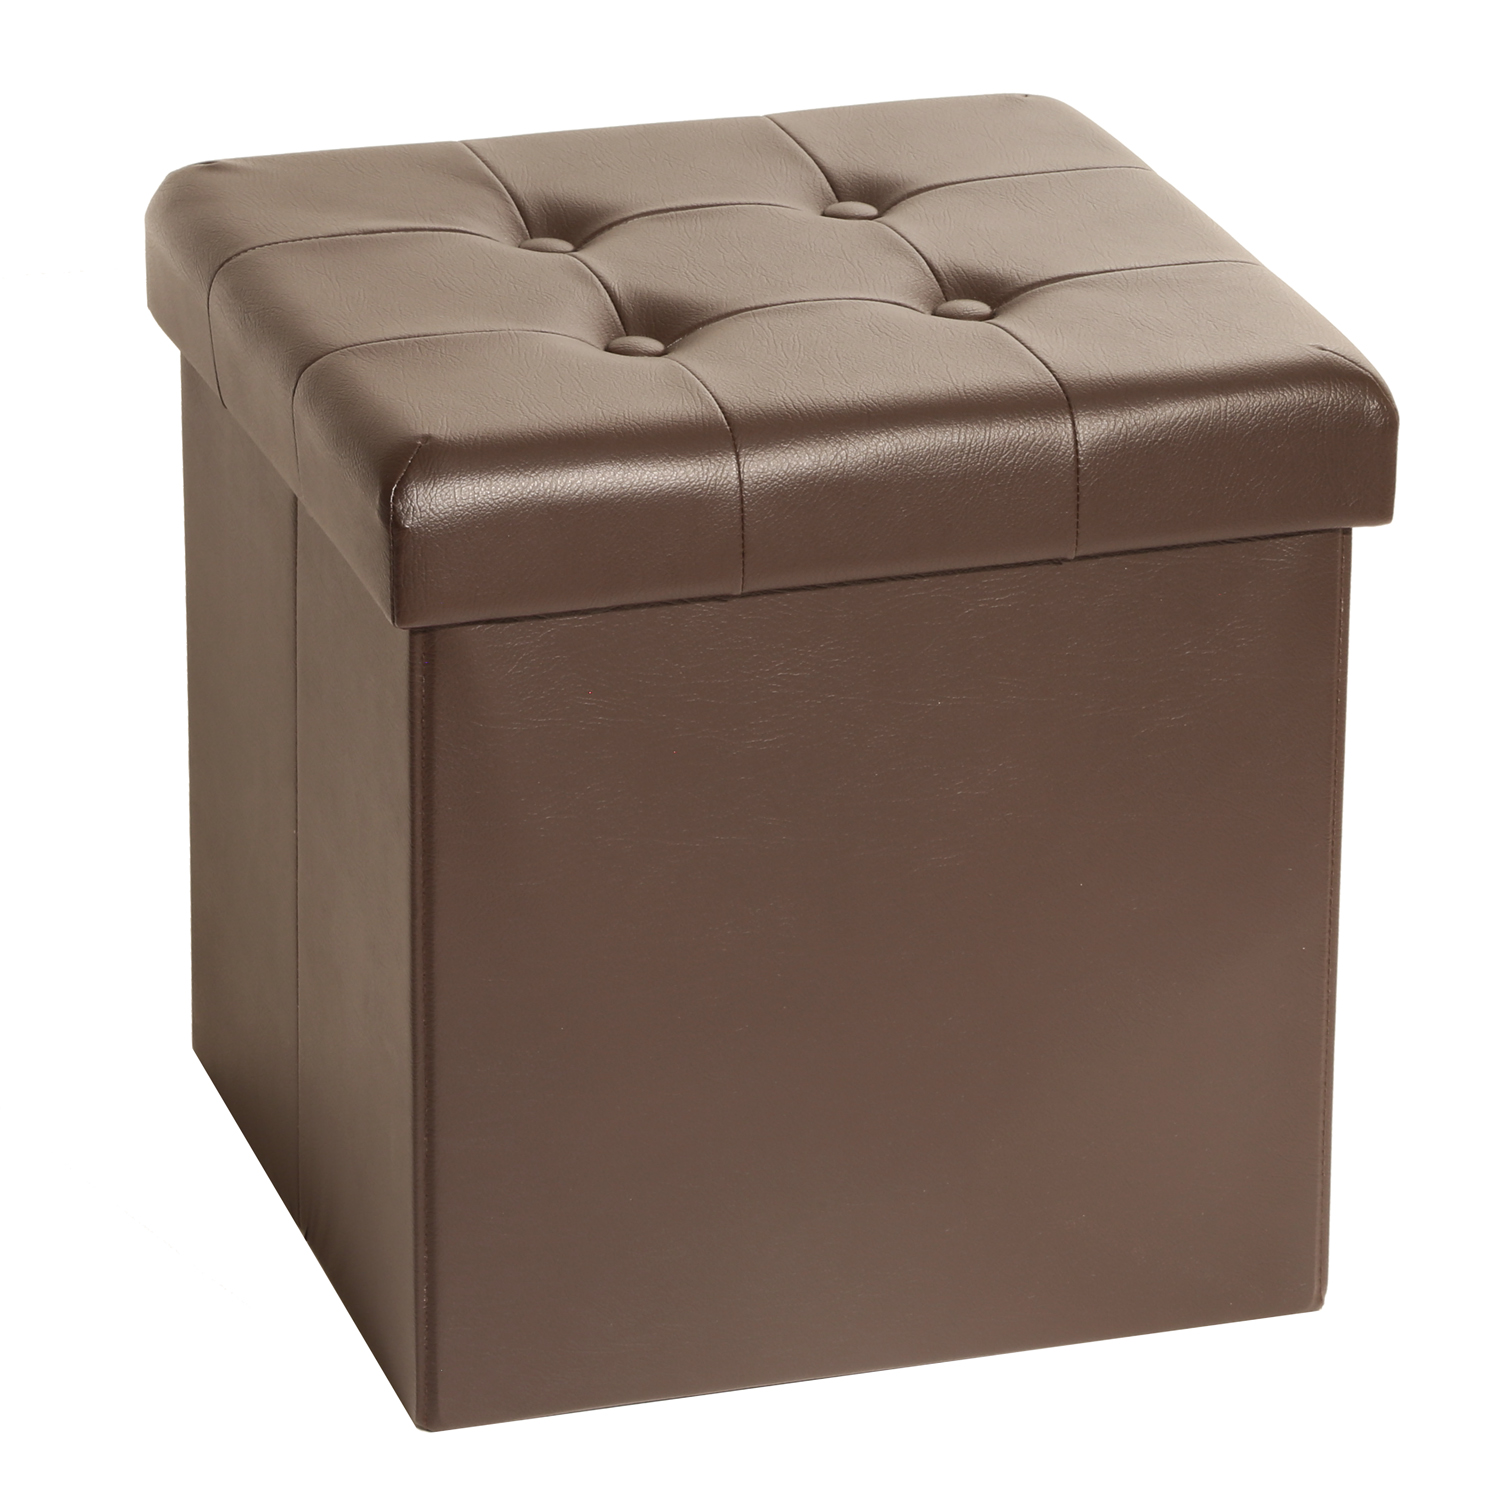 Studded Storage Ottoman | Leather Storage Cube Ottoman | Storage Cube Ottoman